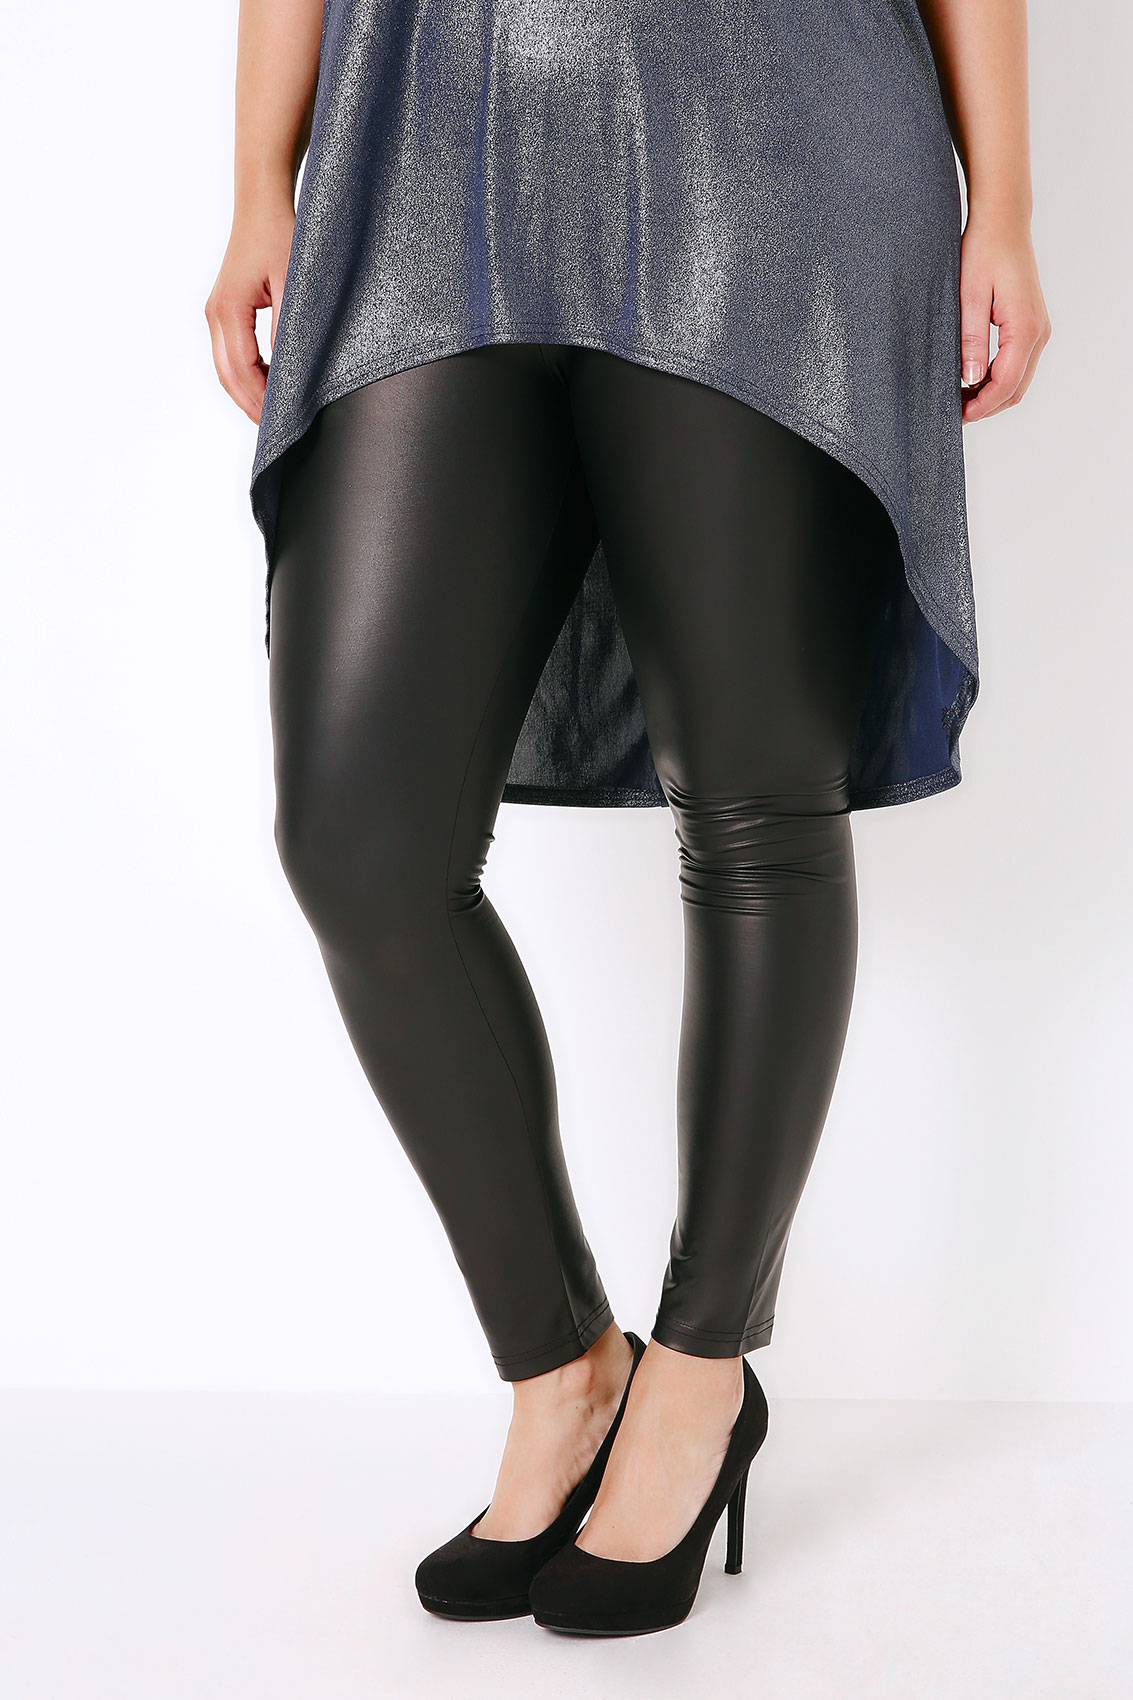 Shop Leggings Womens Clothing on sale at thrushop-06mq49hz.ga and find the best styles and deals right now! Free shipping available and free pickup in-store!